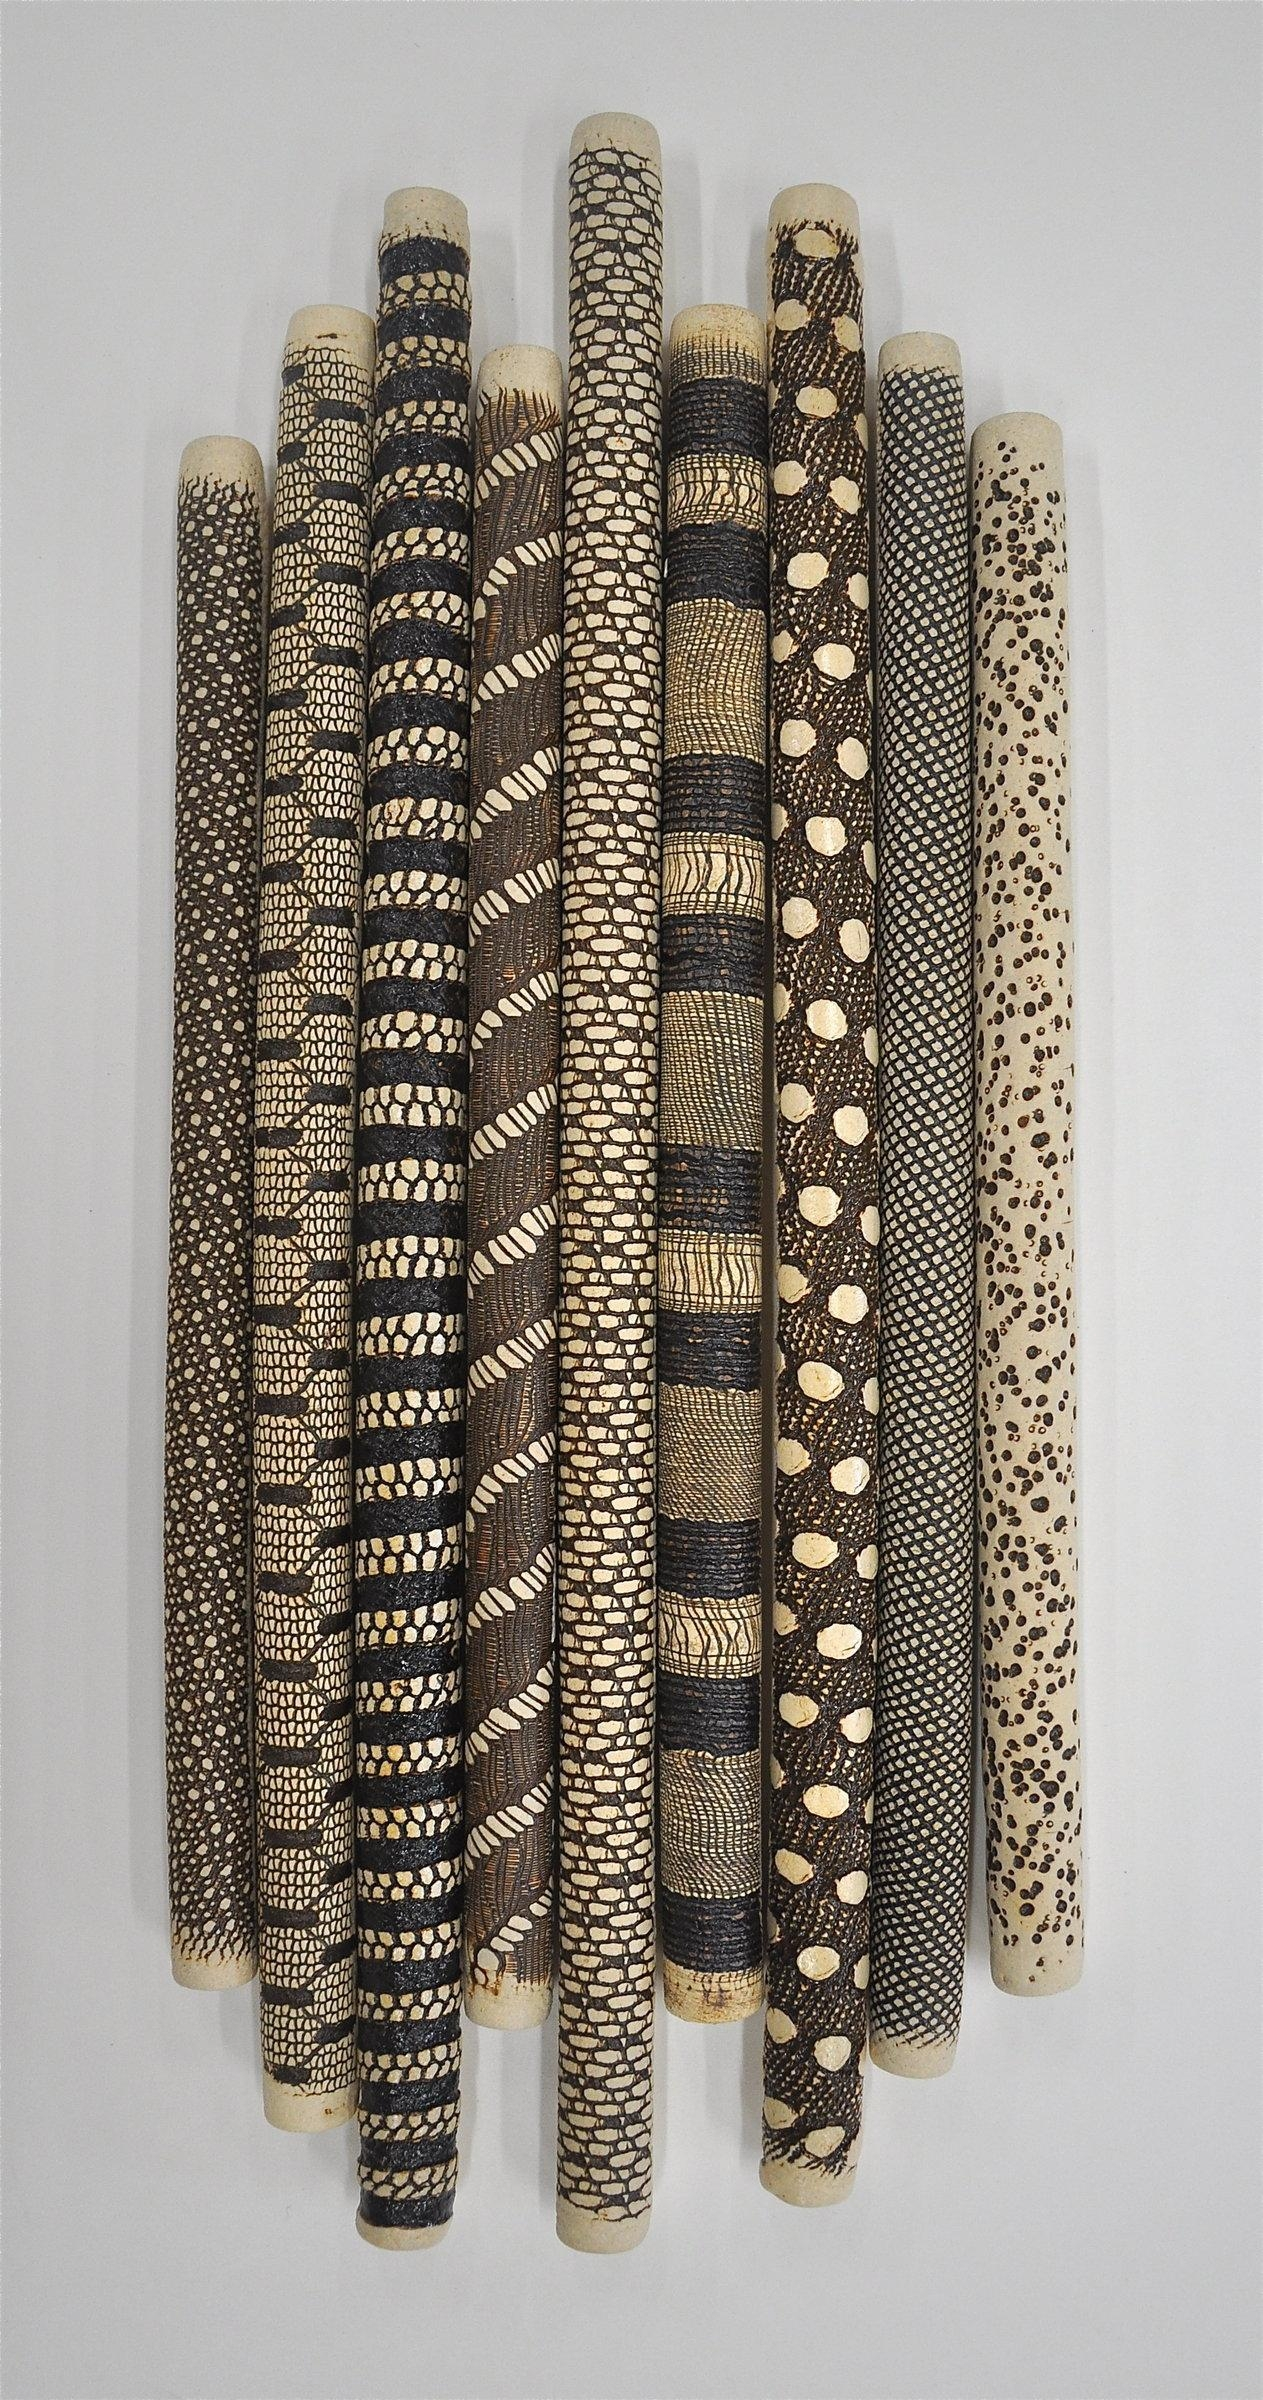 9 Piece Installationkelly Jean Ohl (Ceramic Wall Sculpture Within Large Ceramic Wall Art (View 7 of 20)